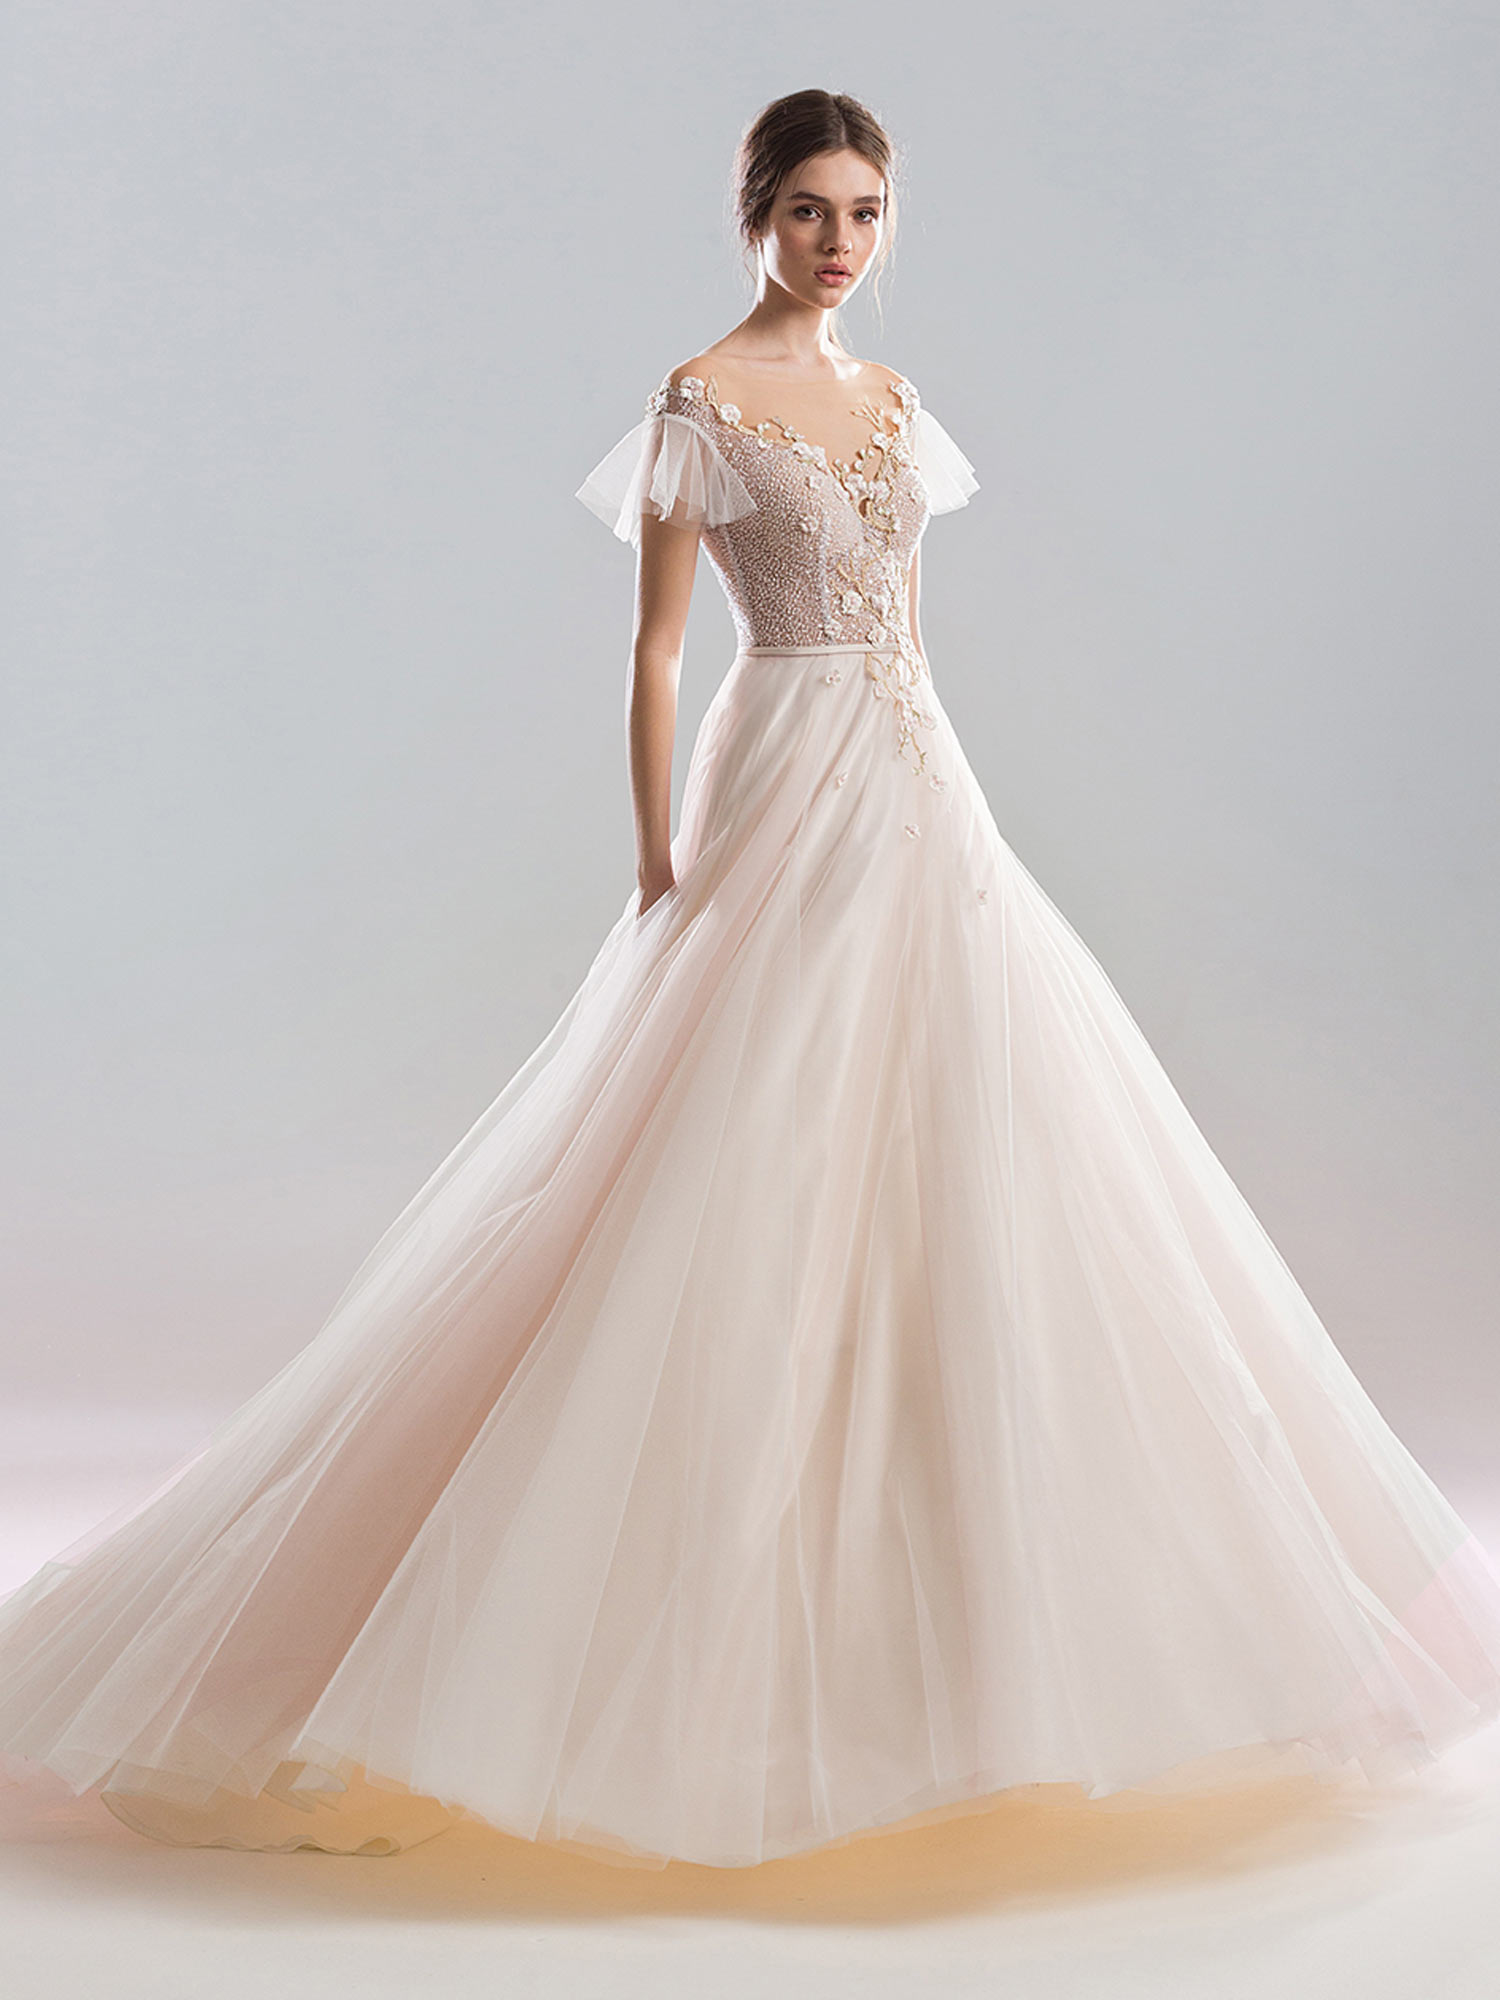 A Line Wedding Dresses.Cap Sleeved A Line Wedding Dress With Beaded Bodice And Floral Details